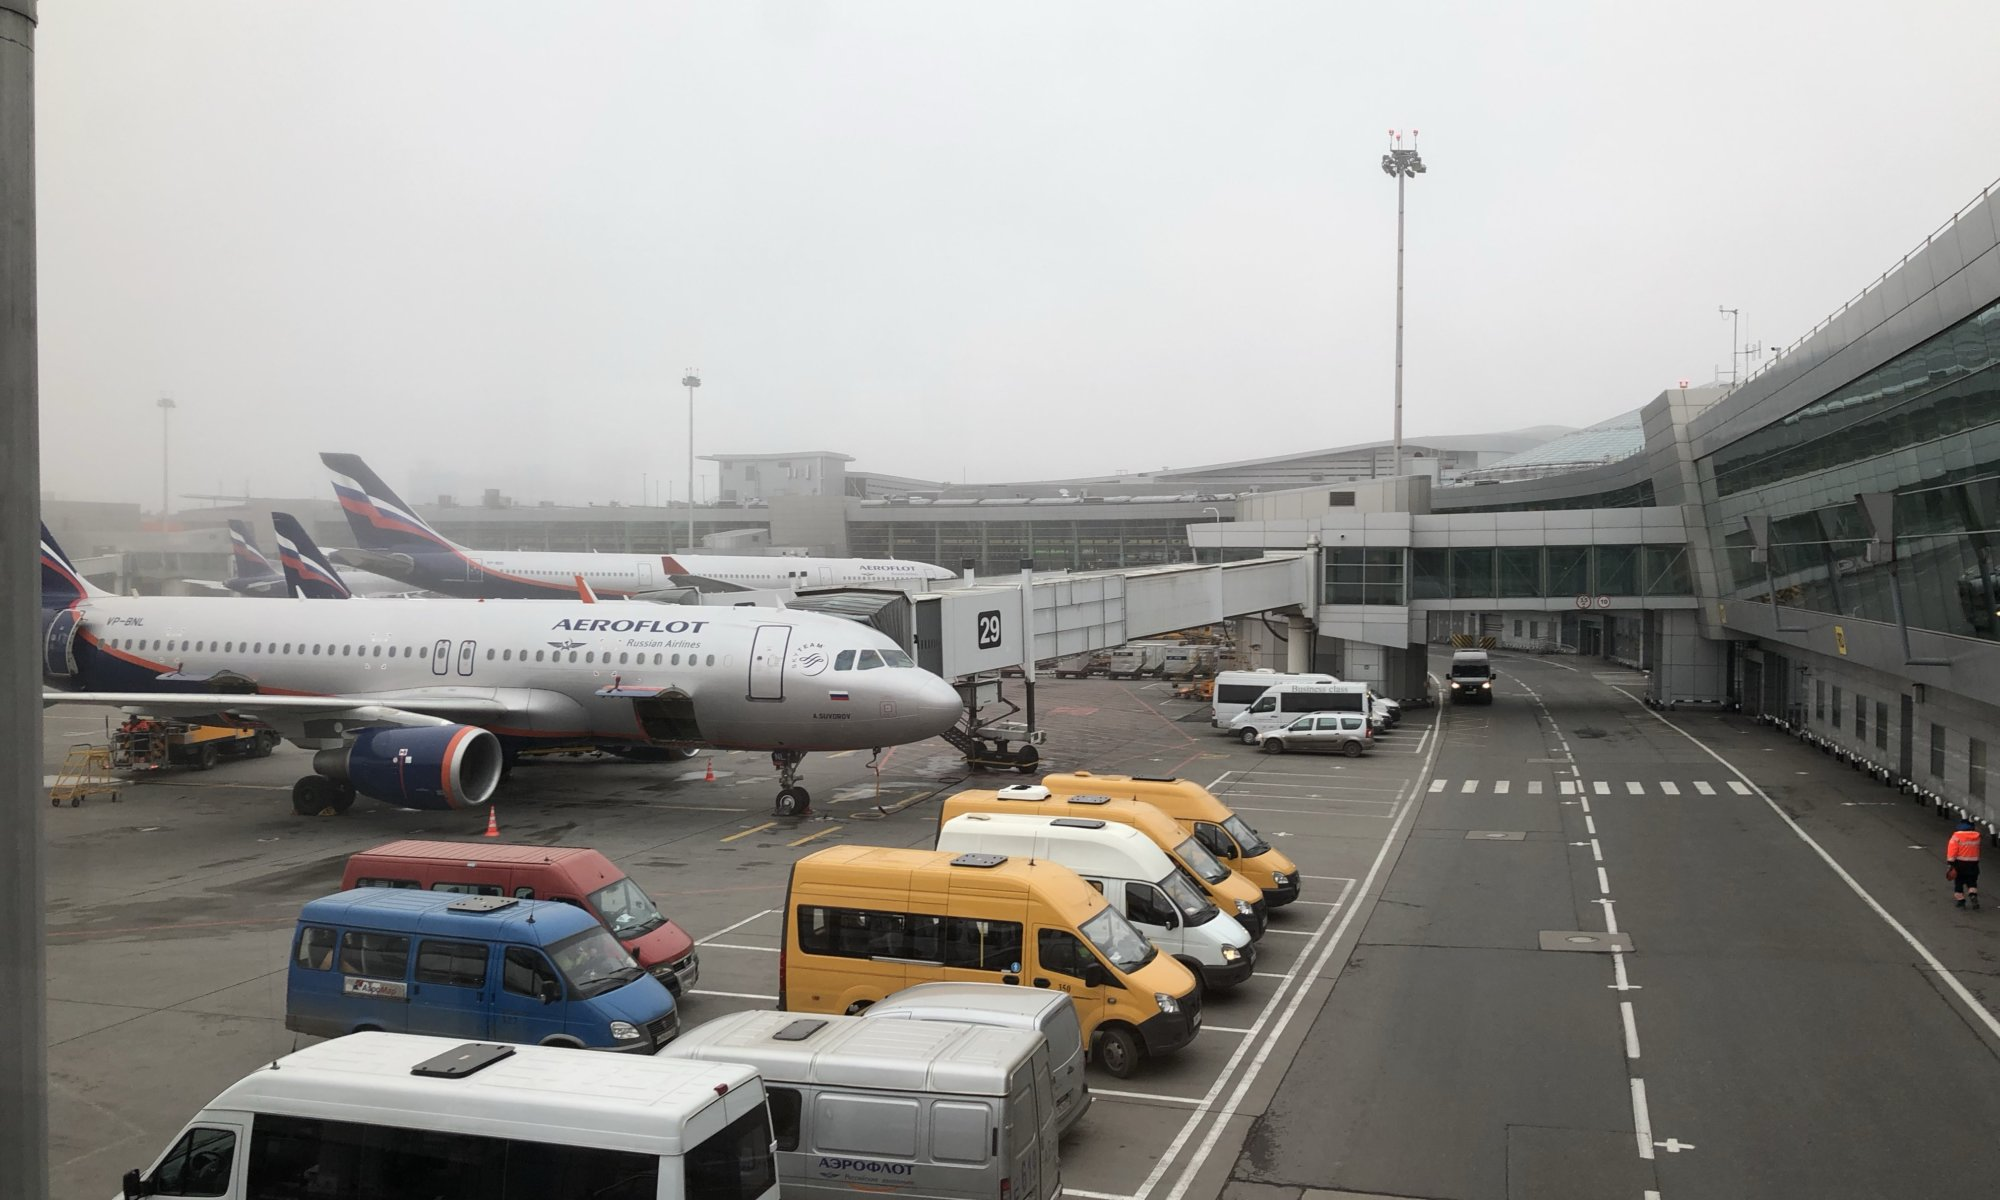 Sheremetyevo International Airport, Москва́